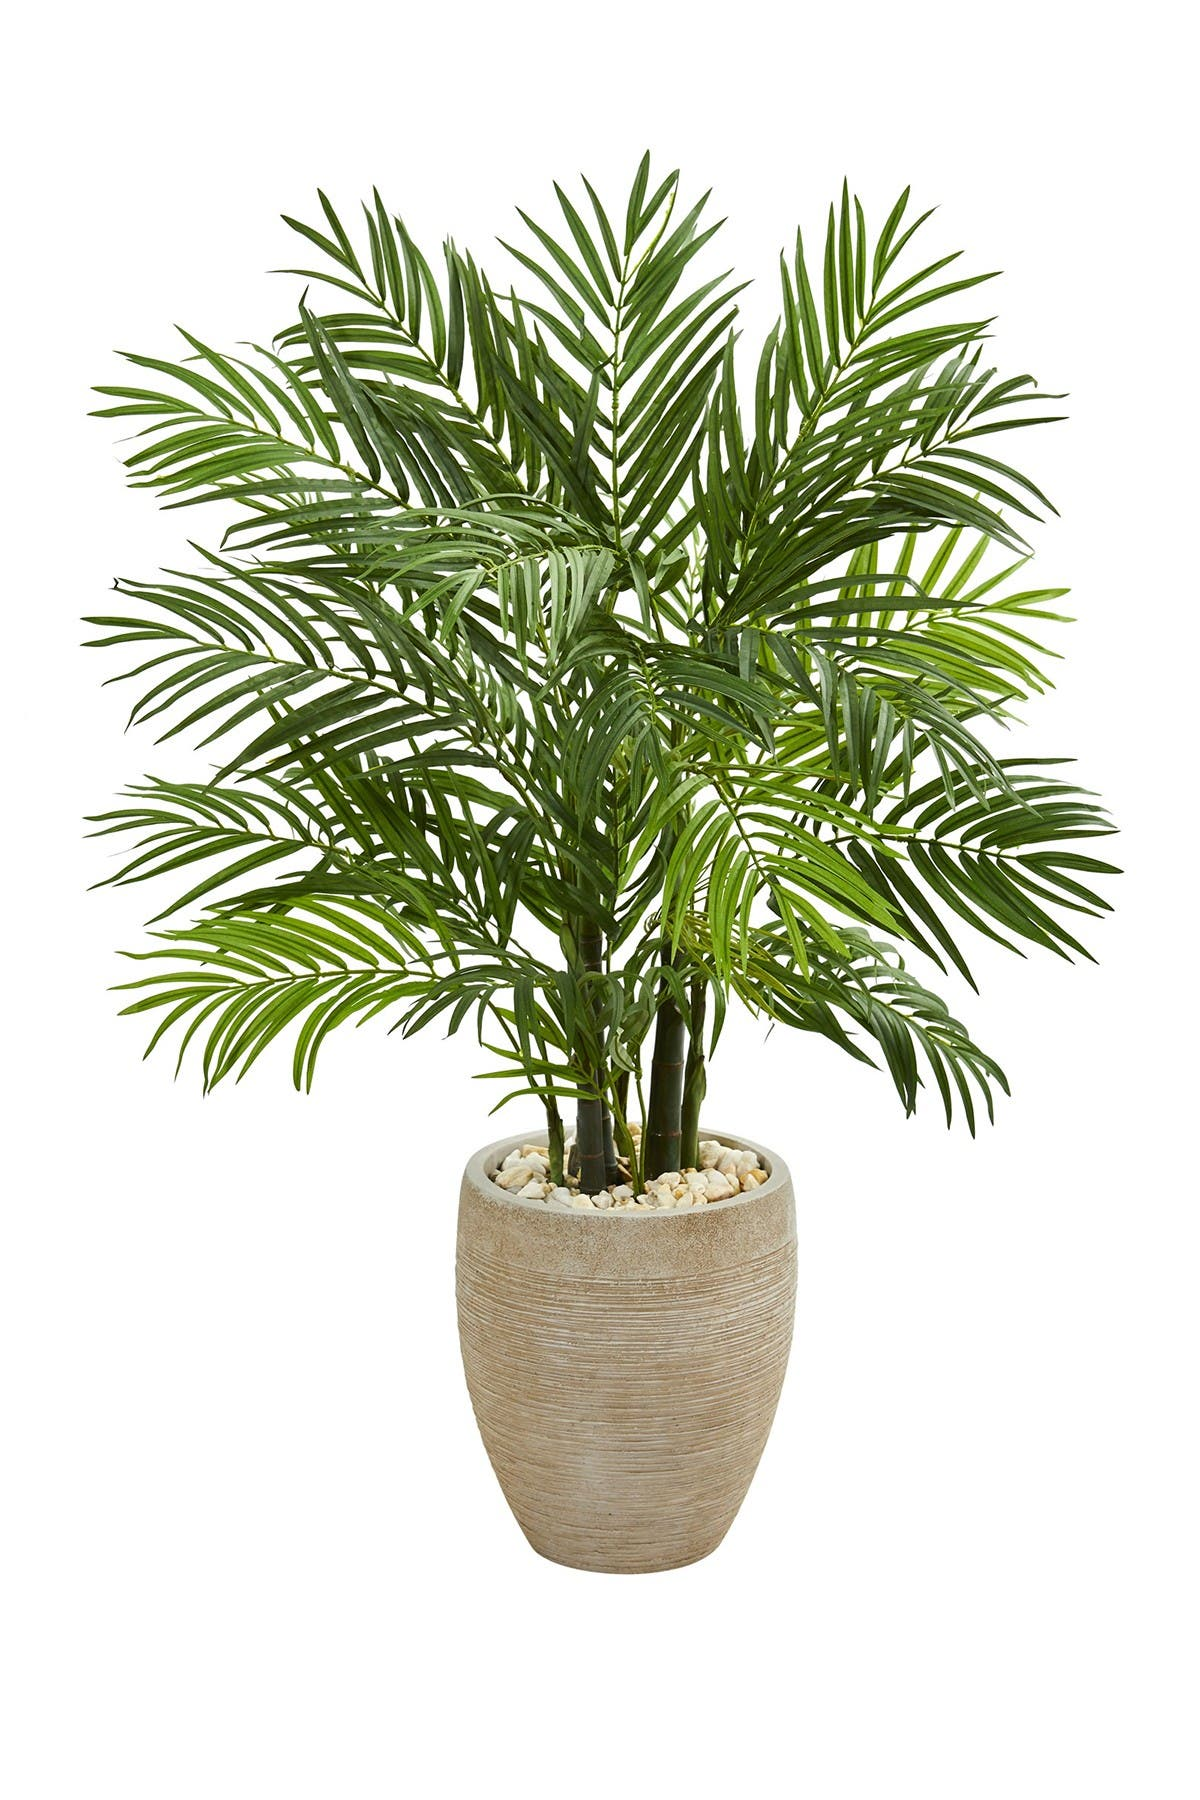 Image of NEARLY NATURAL 4ft. Areca Palm Artificial Tree in Sand Colored Planter